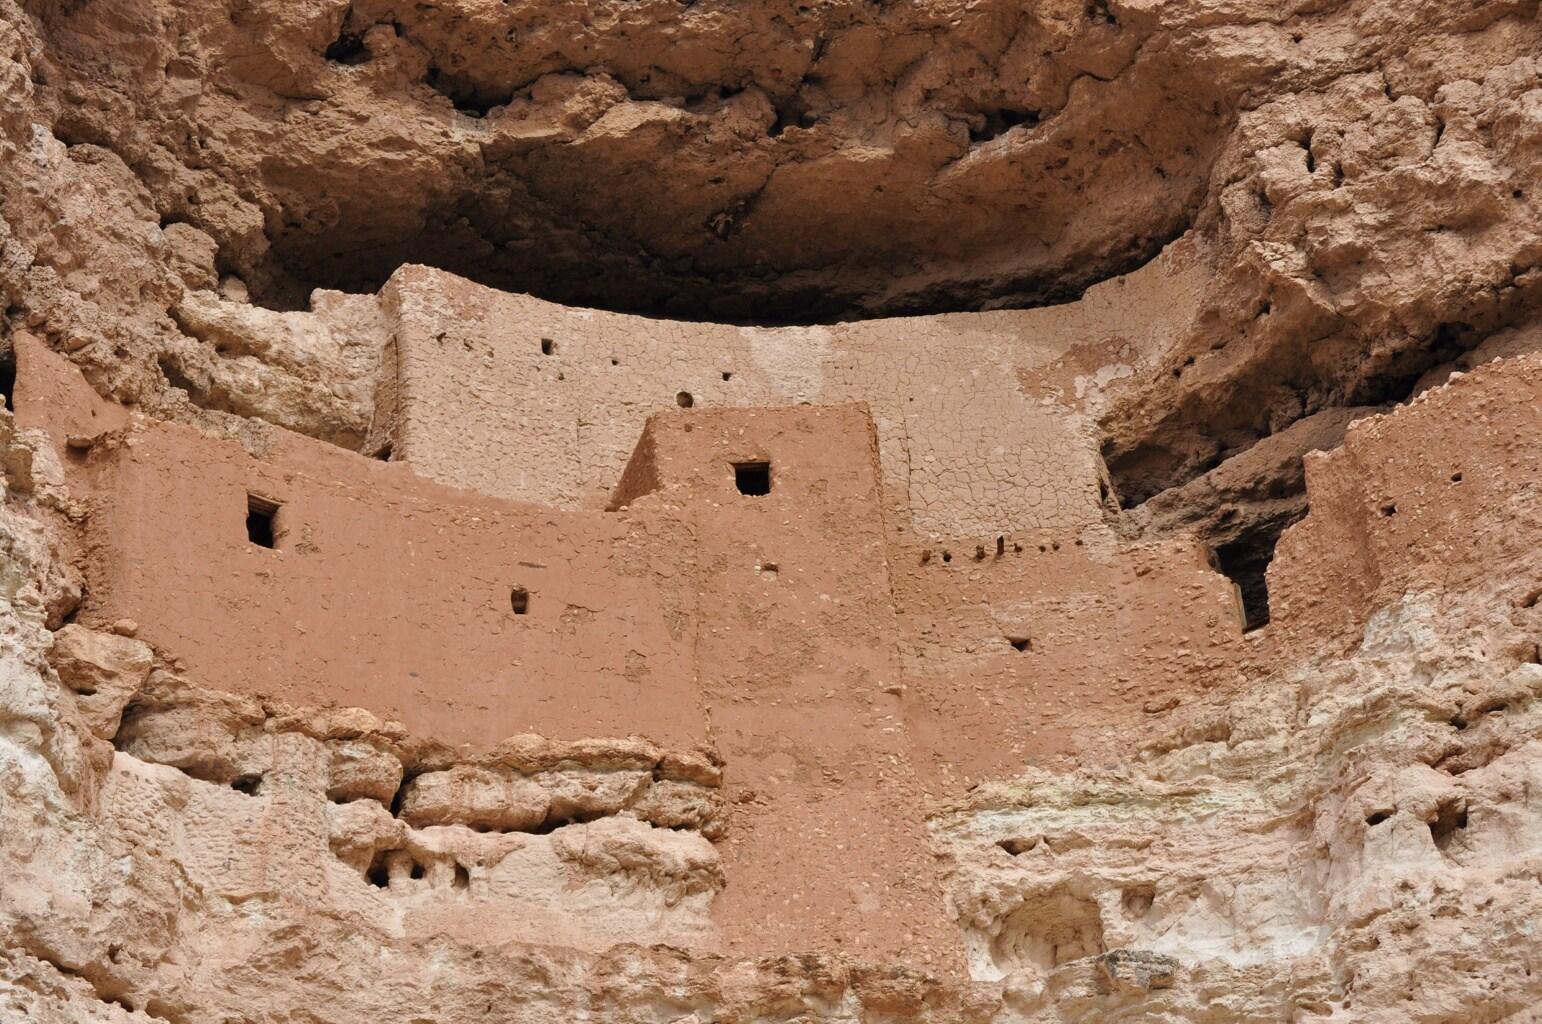 Family Travel: Visiting Ancient Dwellings in and Around Phoenix, IMG Cred: National Park Service